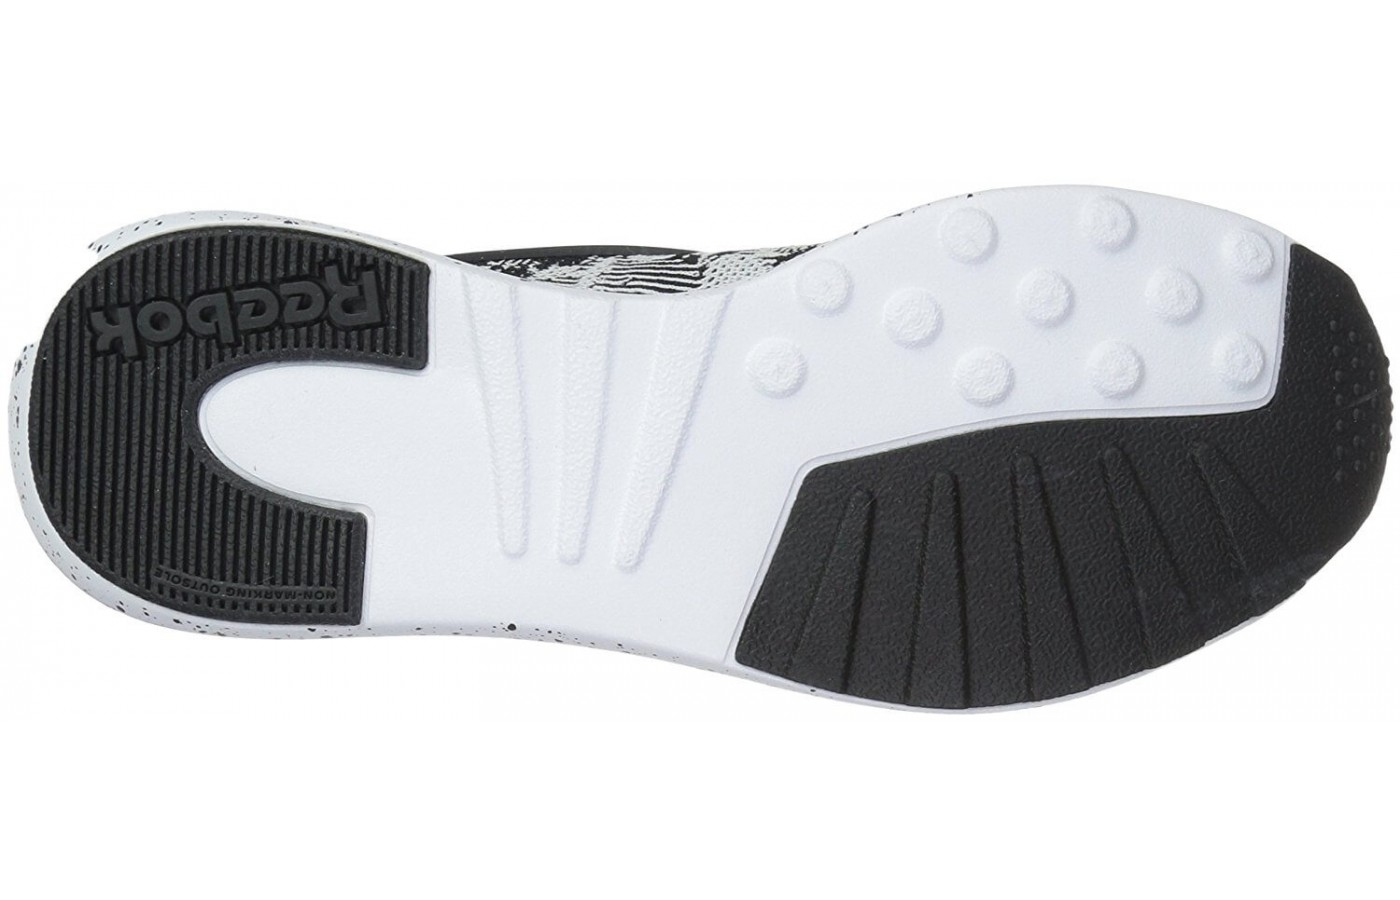 The outsole of the Reebok Zoku Runner features a shallower tread pattern than many other running shoes.